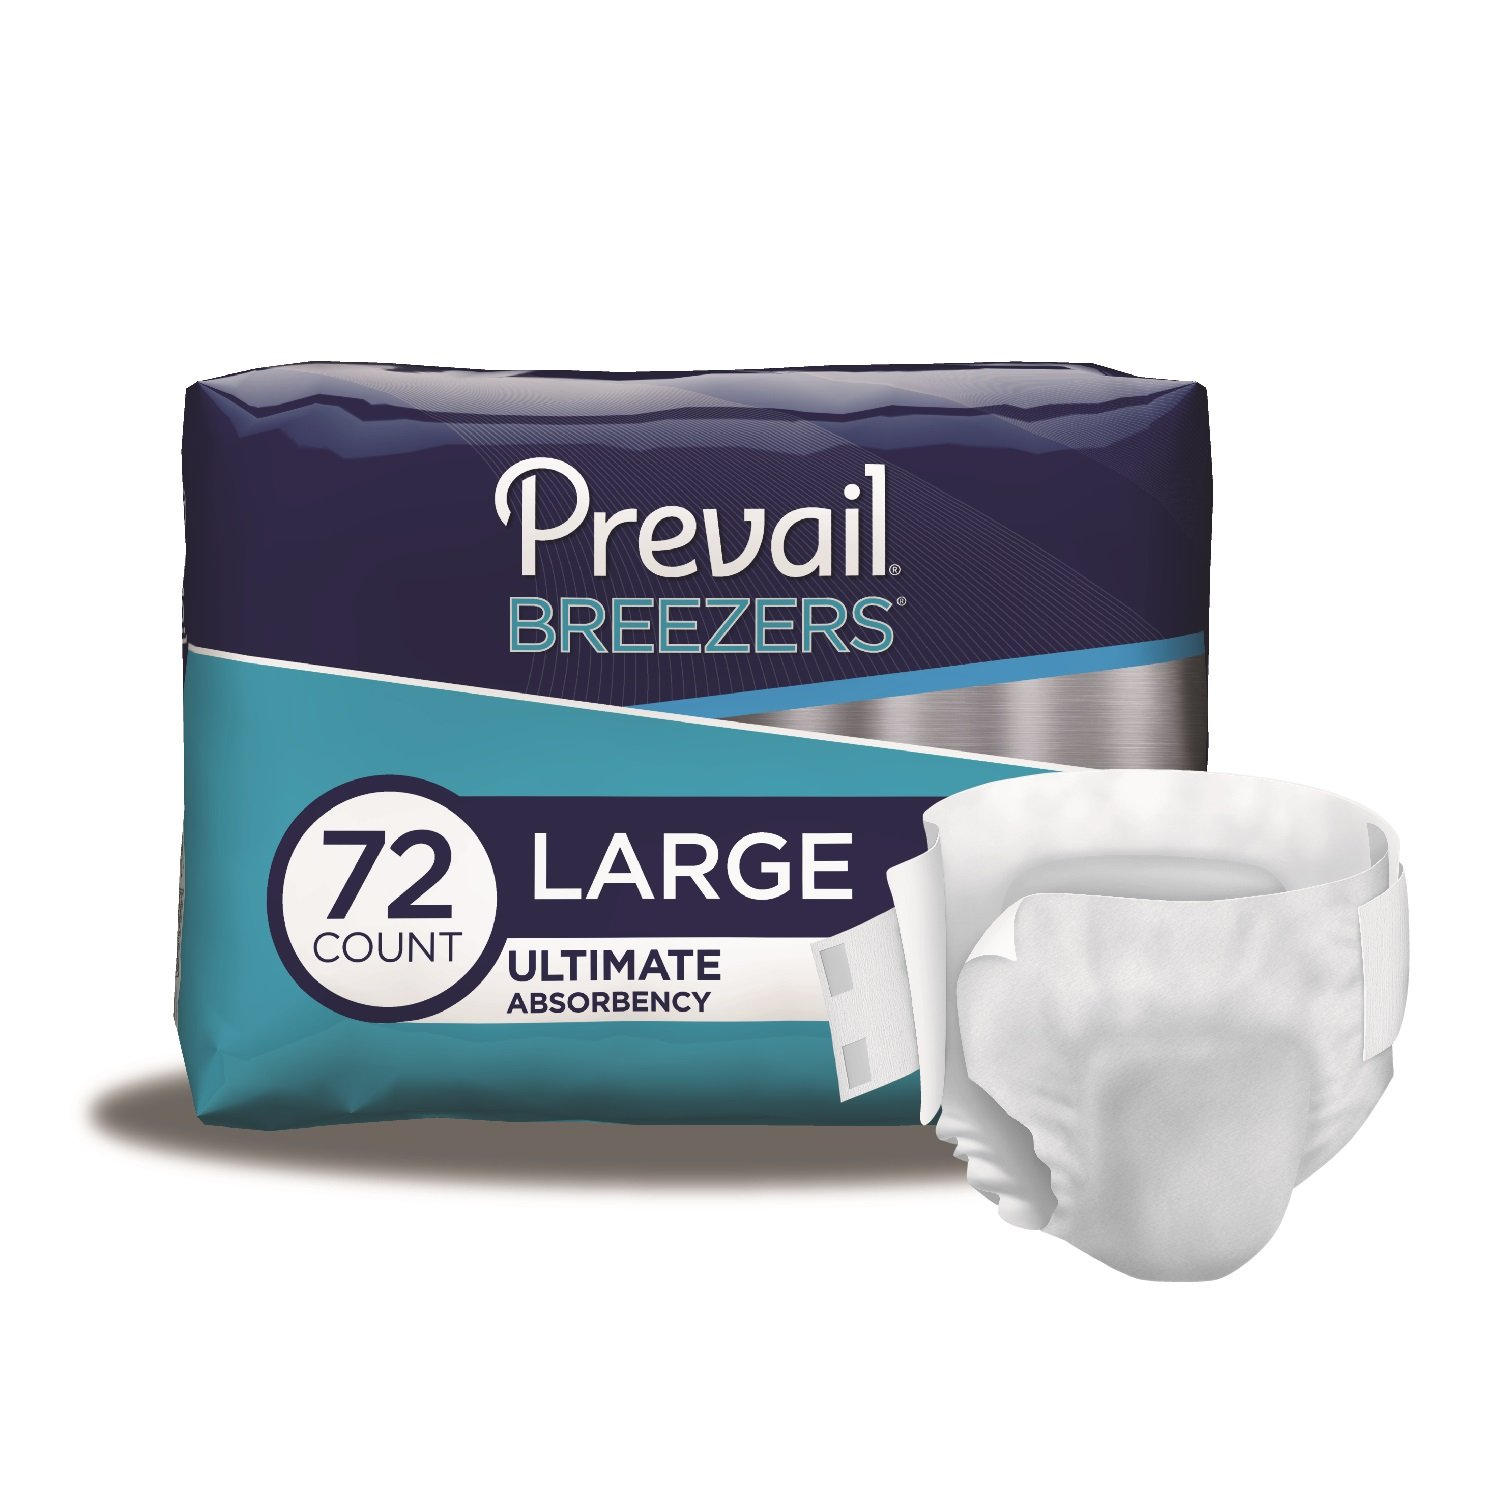 Prevail Breezers Ultimate Absorbency Incontinence Briefs Large 18 Count (Pack of 4) Breathable Rapid